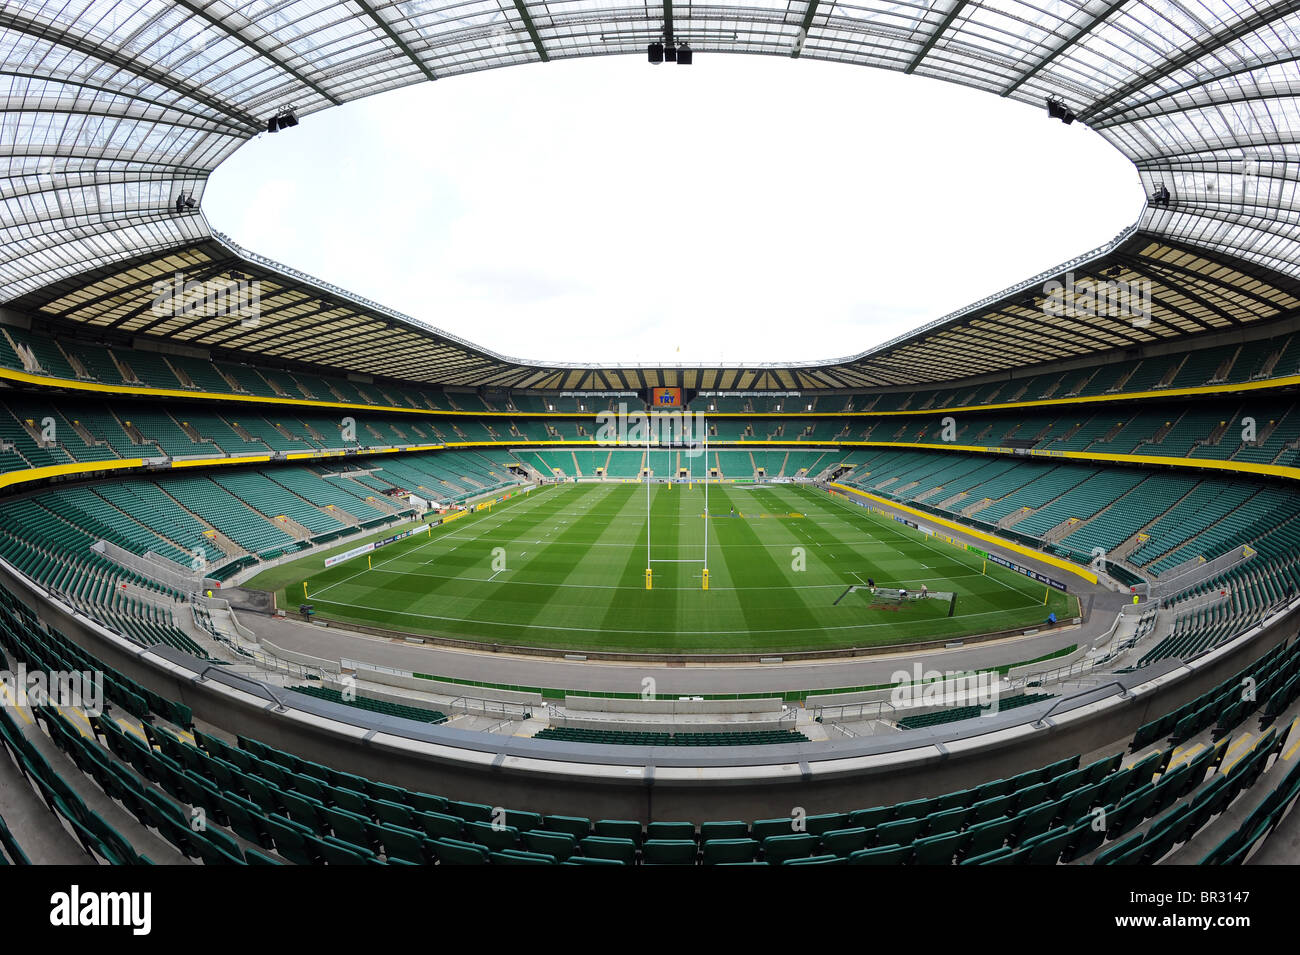 Vista interior el Estadio Twickenham, Twickenham, Londres. Casa de los Ingleses Rugby Football Union o RFU Imagen De Stock